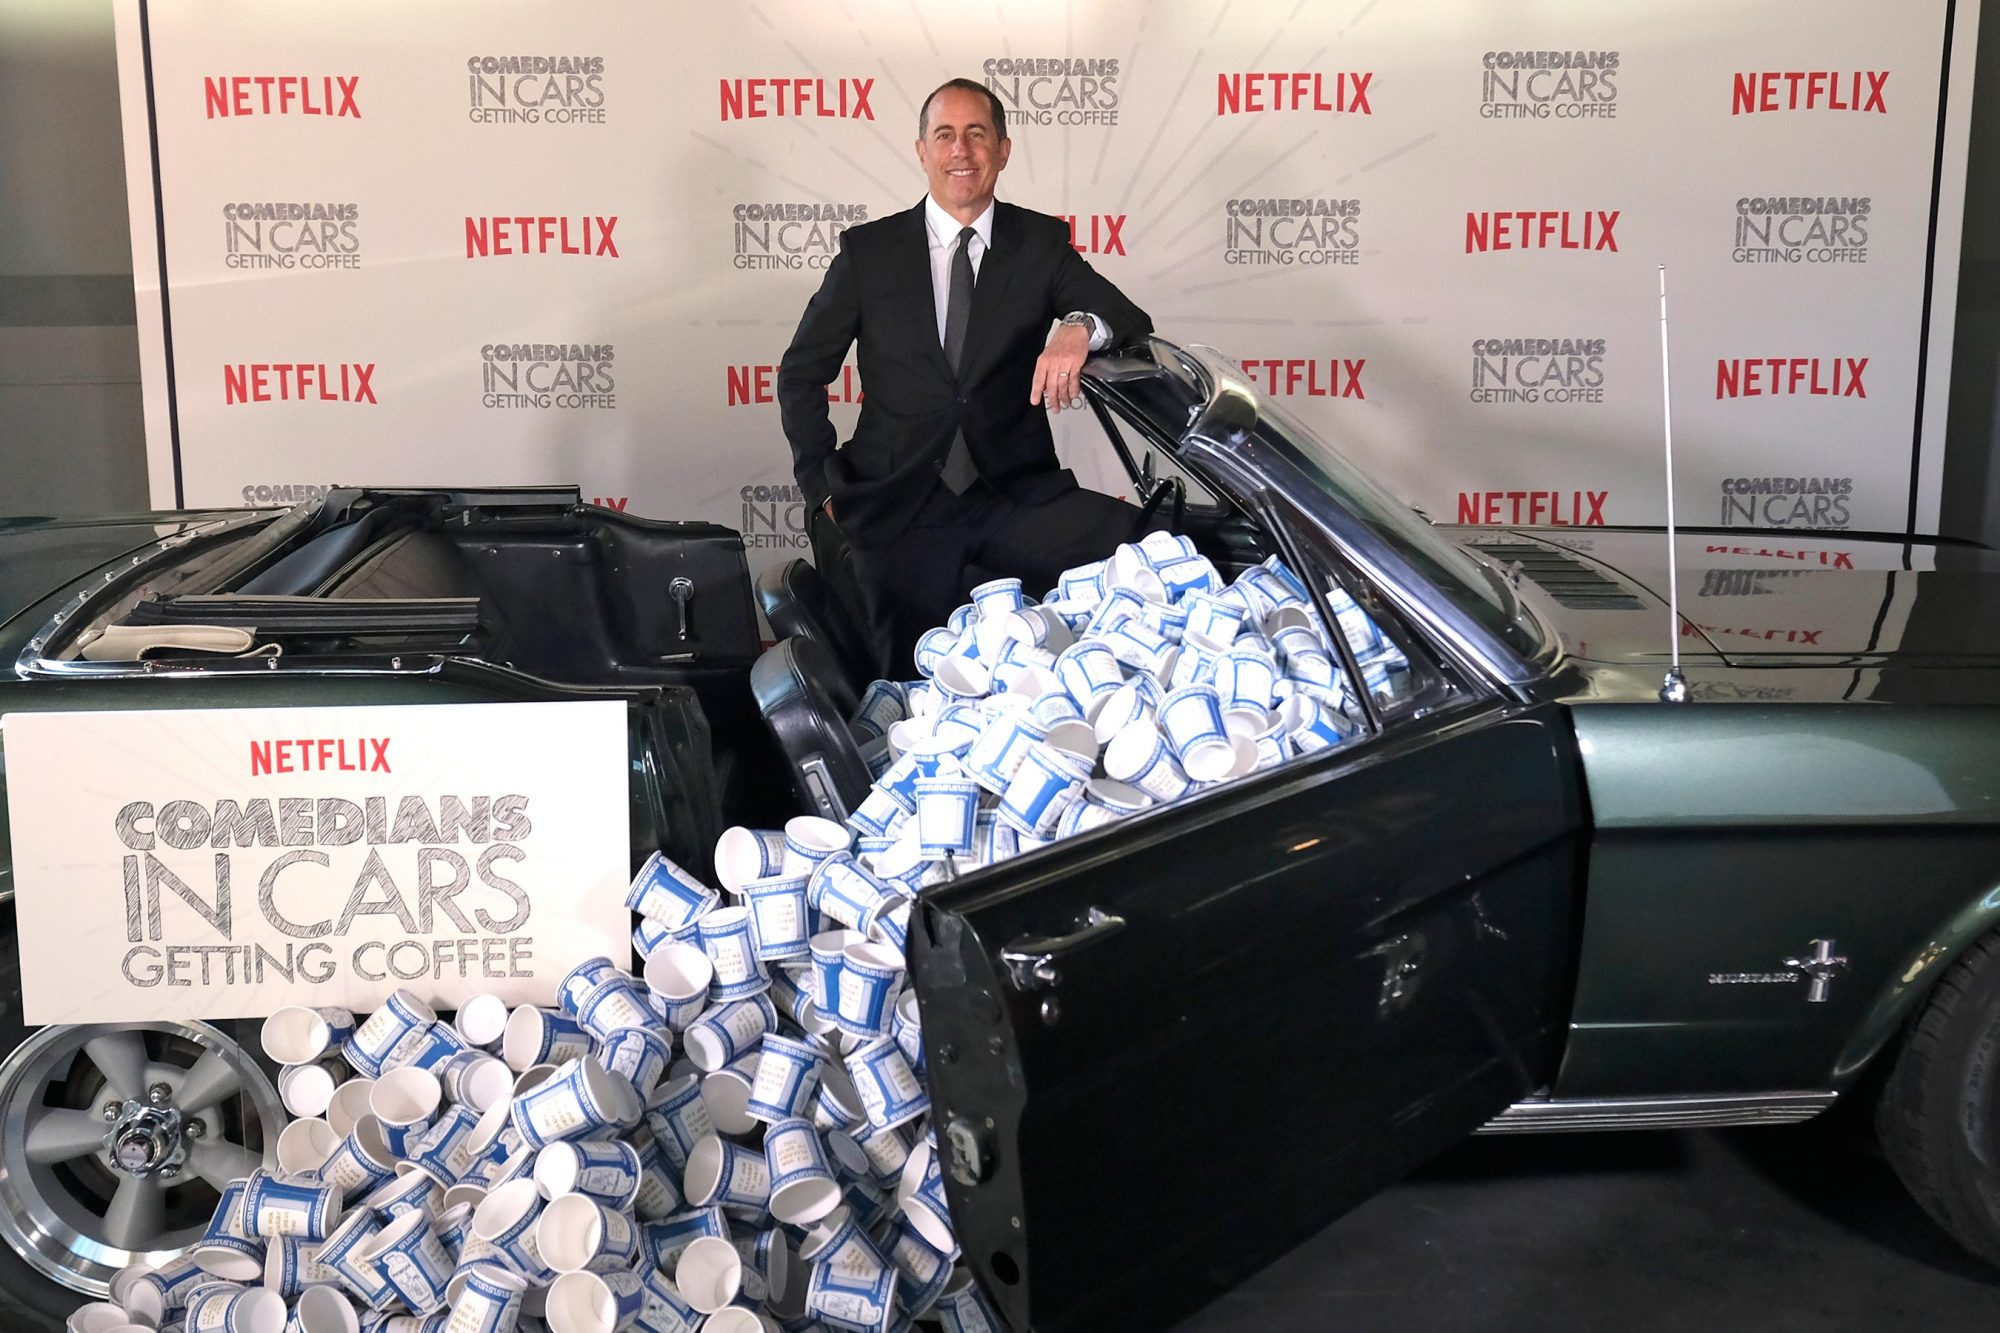 Comedians in Cars Getting Coffee - New York Event